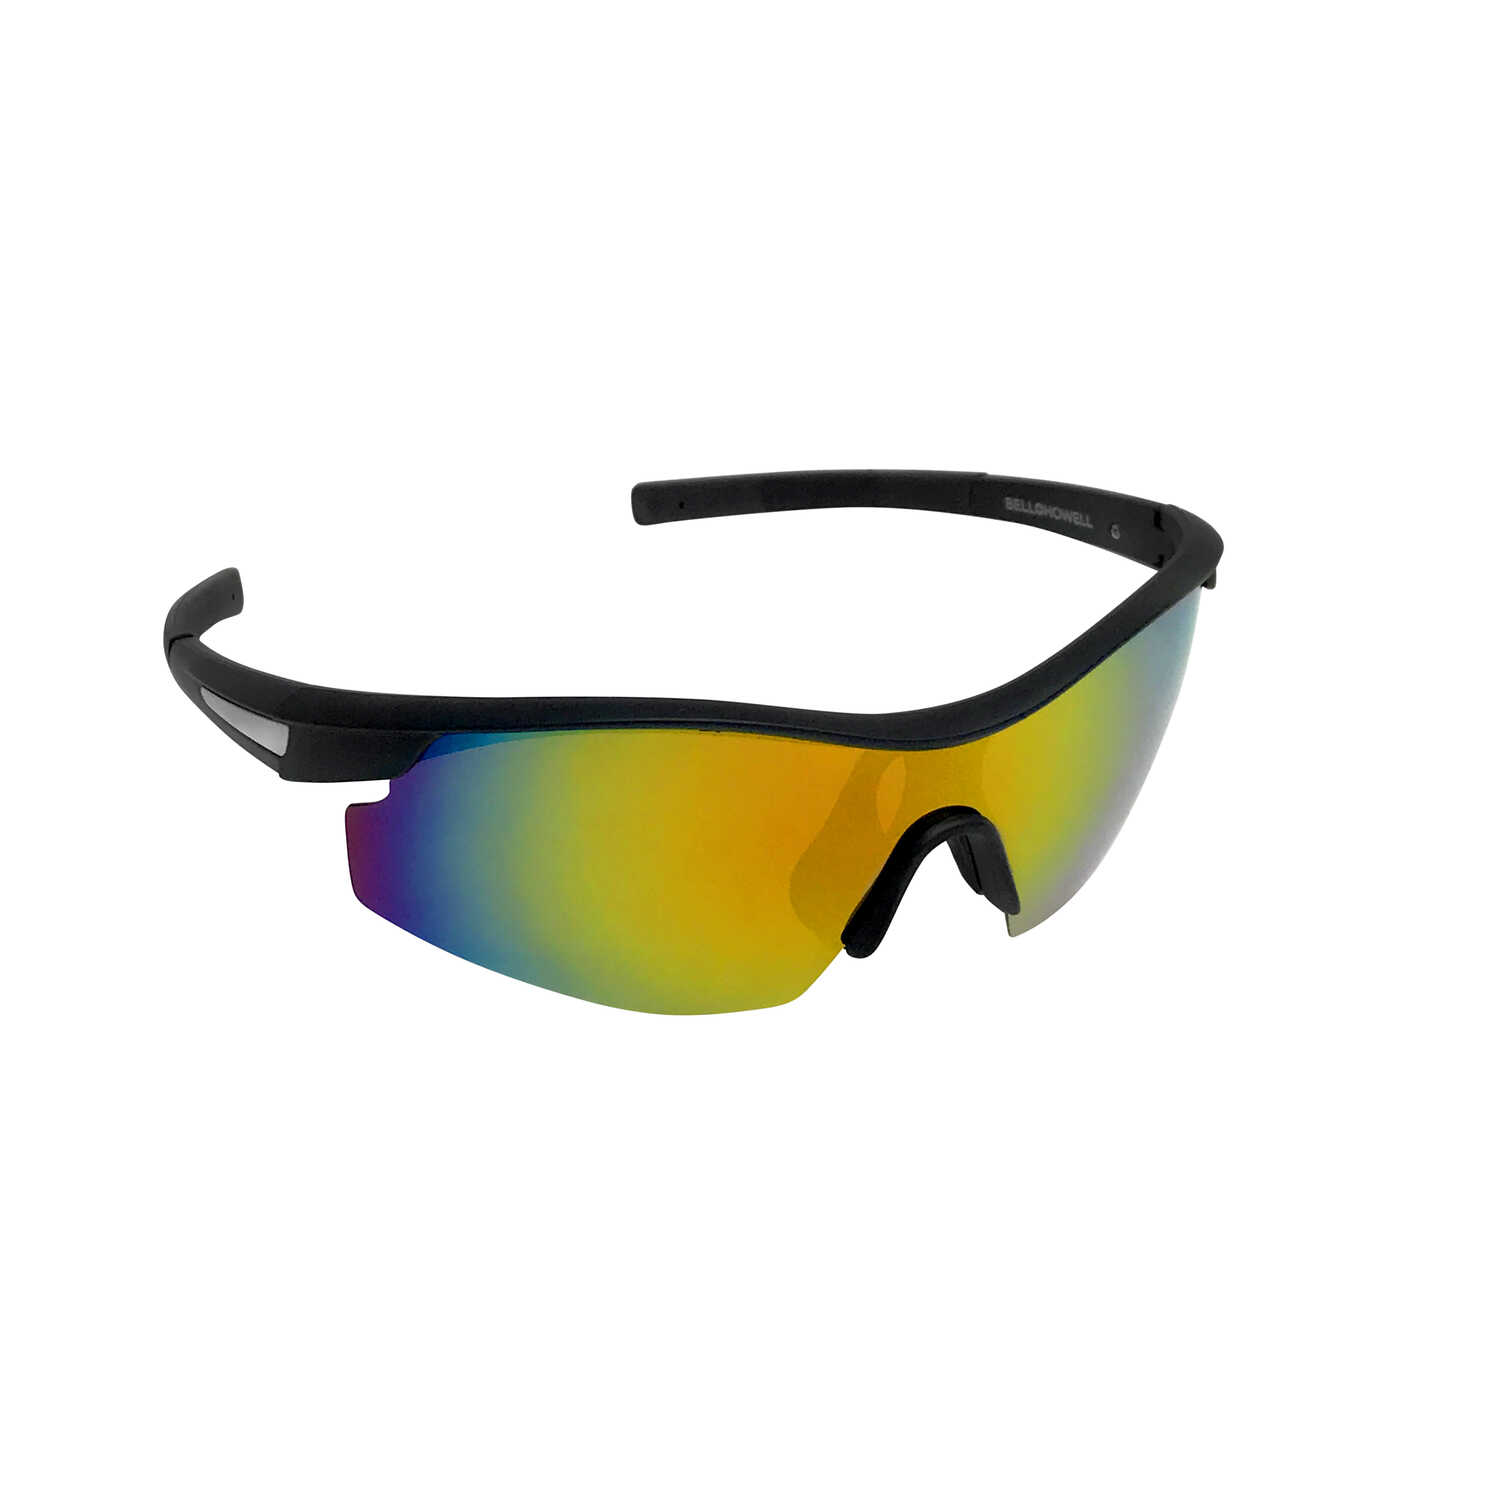 Bell and Howell  As Seen On TV  Polarized SunGlasses  Tac Glasses  1 pk